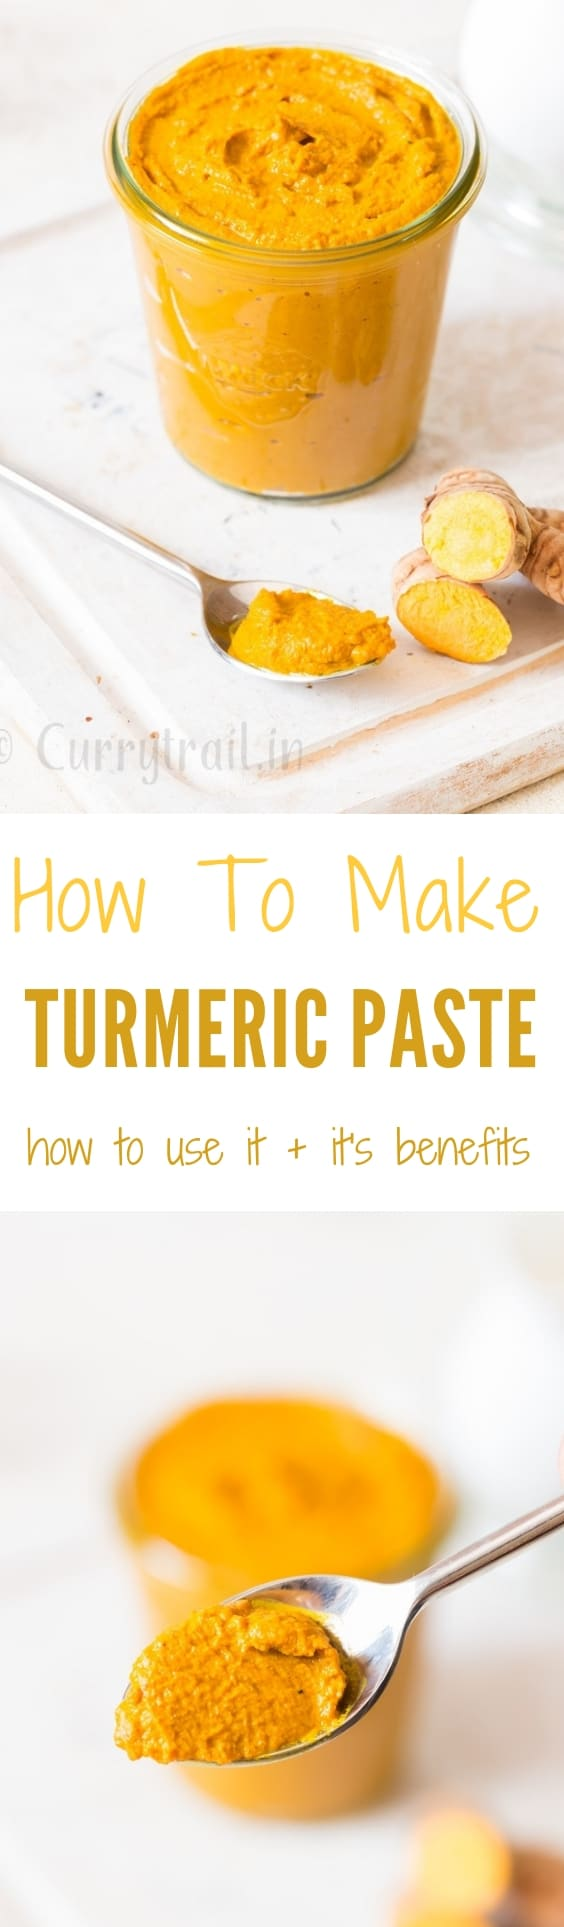 homemade turmeric paste in weck jars with text overlay